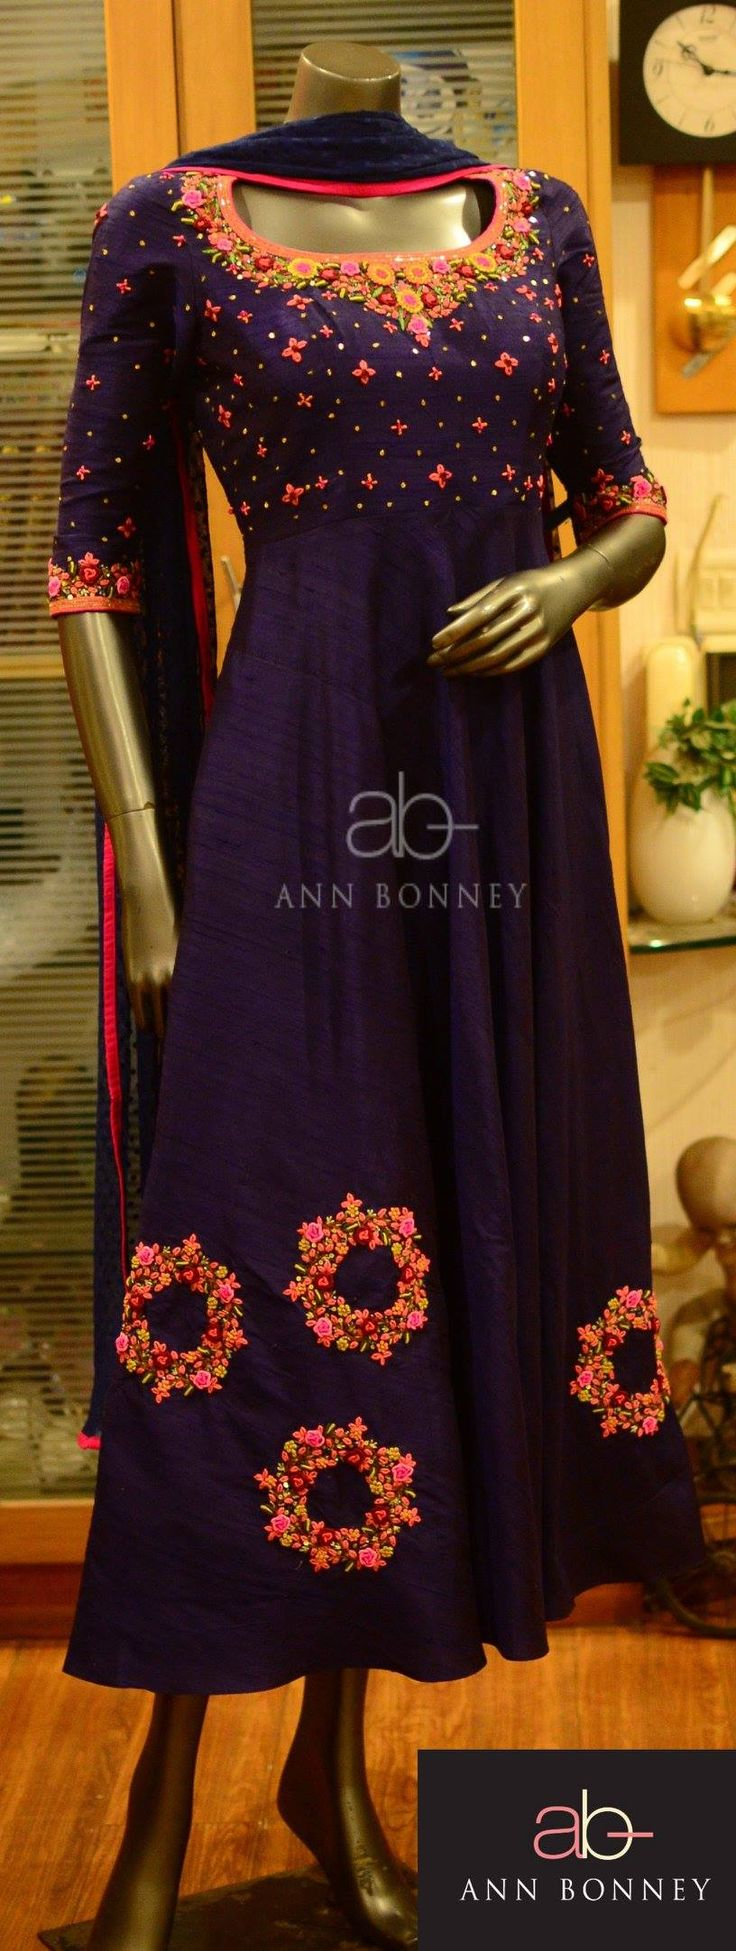 CODE:ABF104For details email roshly@annbonney.com orwhatsapp at 91 9773547895 31 October 2016